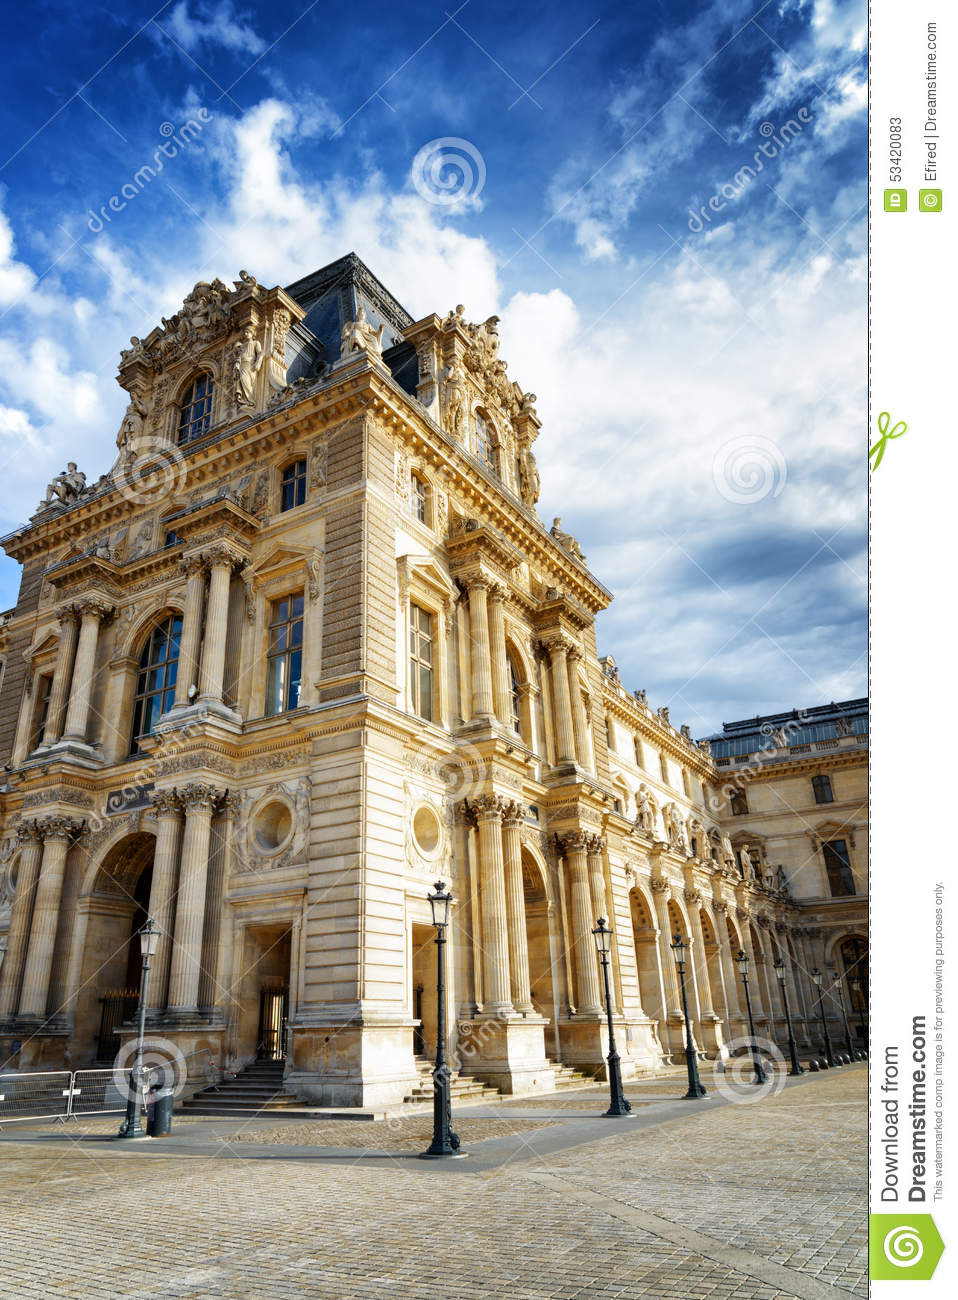 The Facade Of The Pavilion Mollien Of The Louvre Museum In Paris Stock Photo